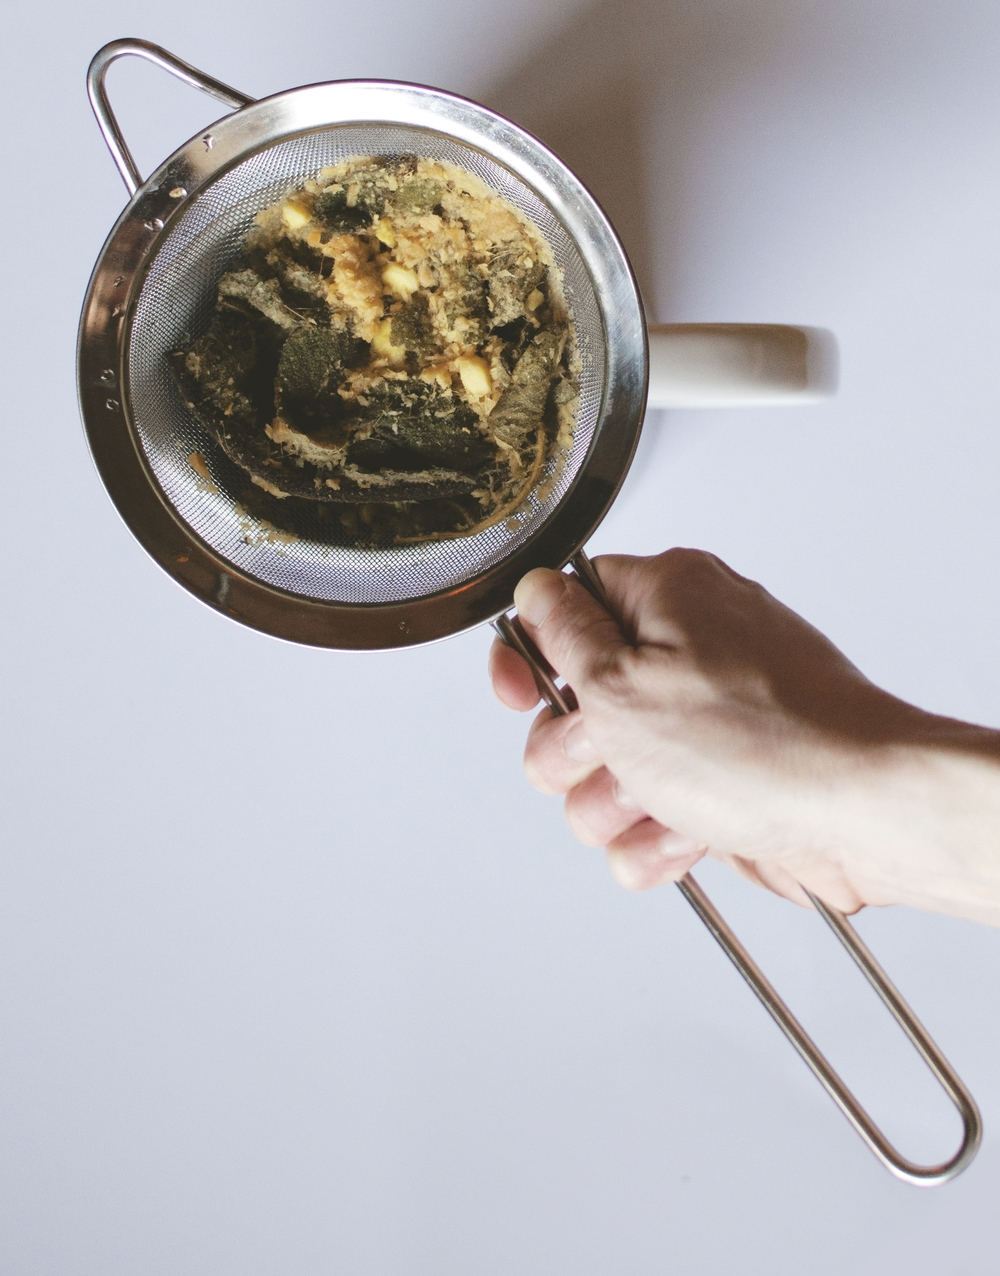 After boiling for about 10 minutes, use a mesh strainer to filter out the mullein and ginger.